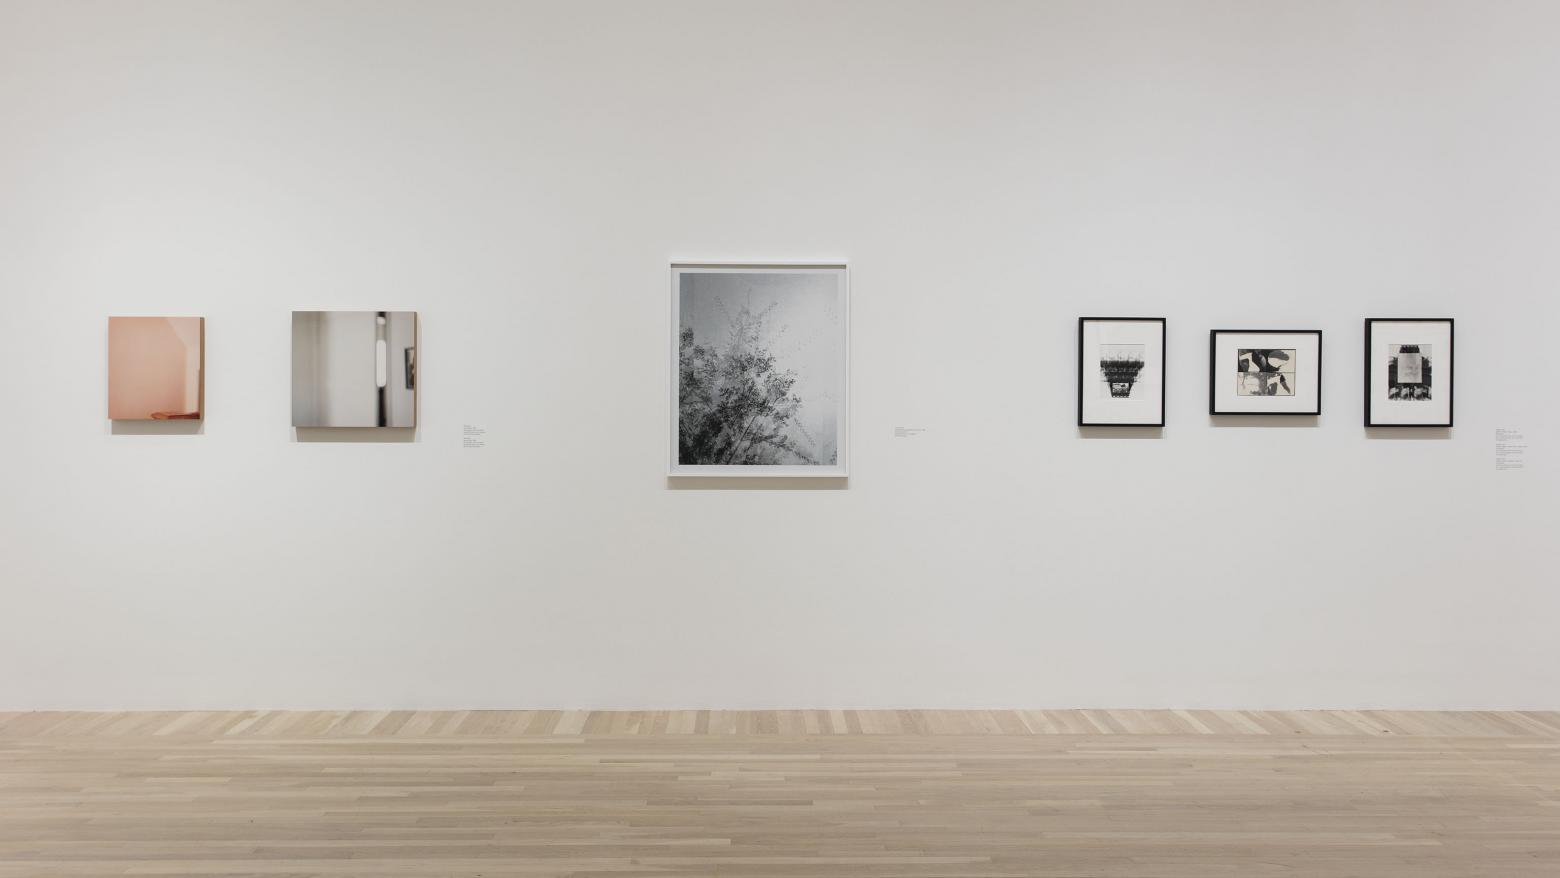 Still Life with Fish: Photography from the Collection, installation view, Hammer Museum, Los Angeles, February 13-May 15, 2016. Photo: Brian Forrest.